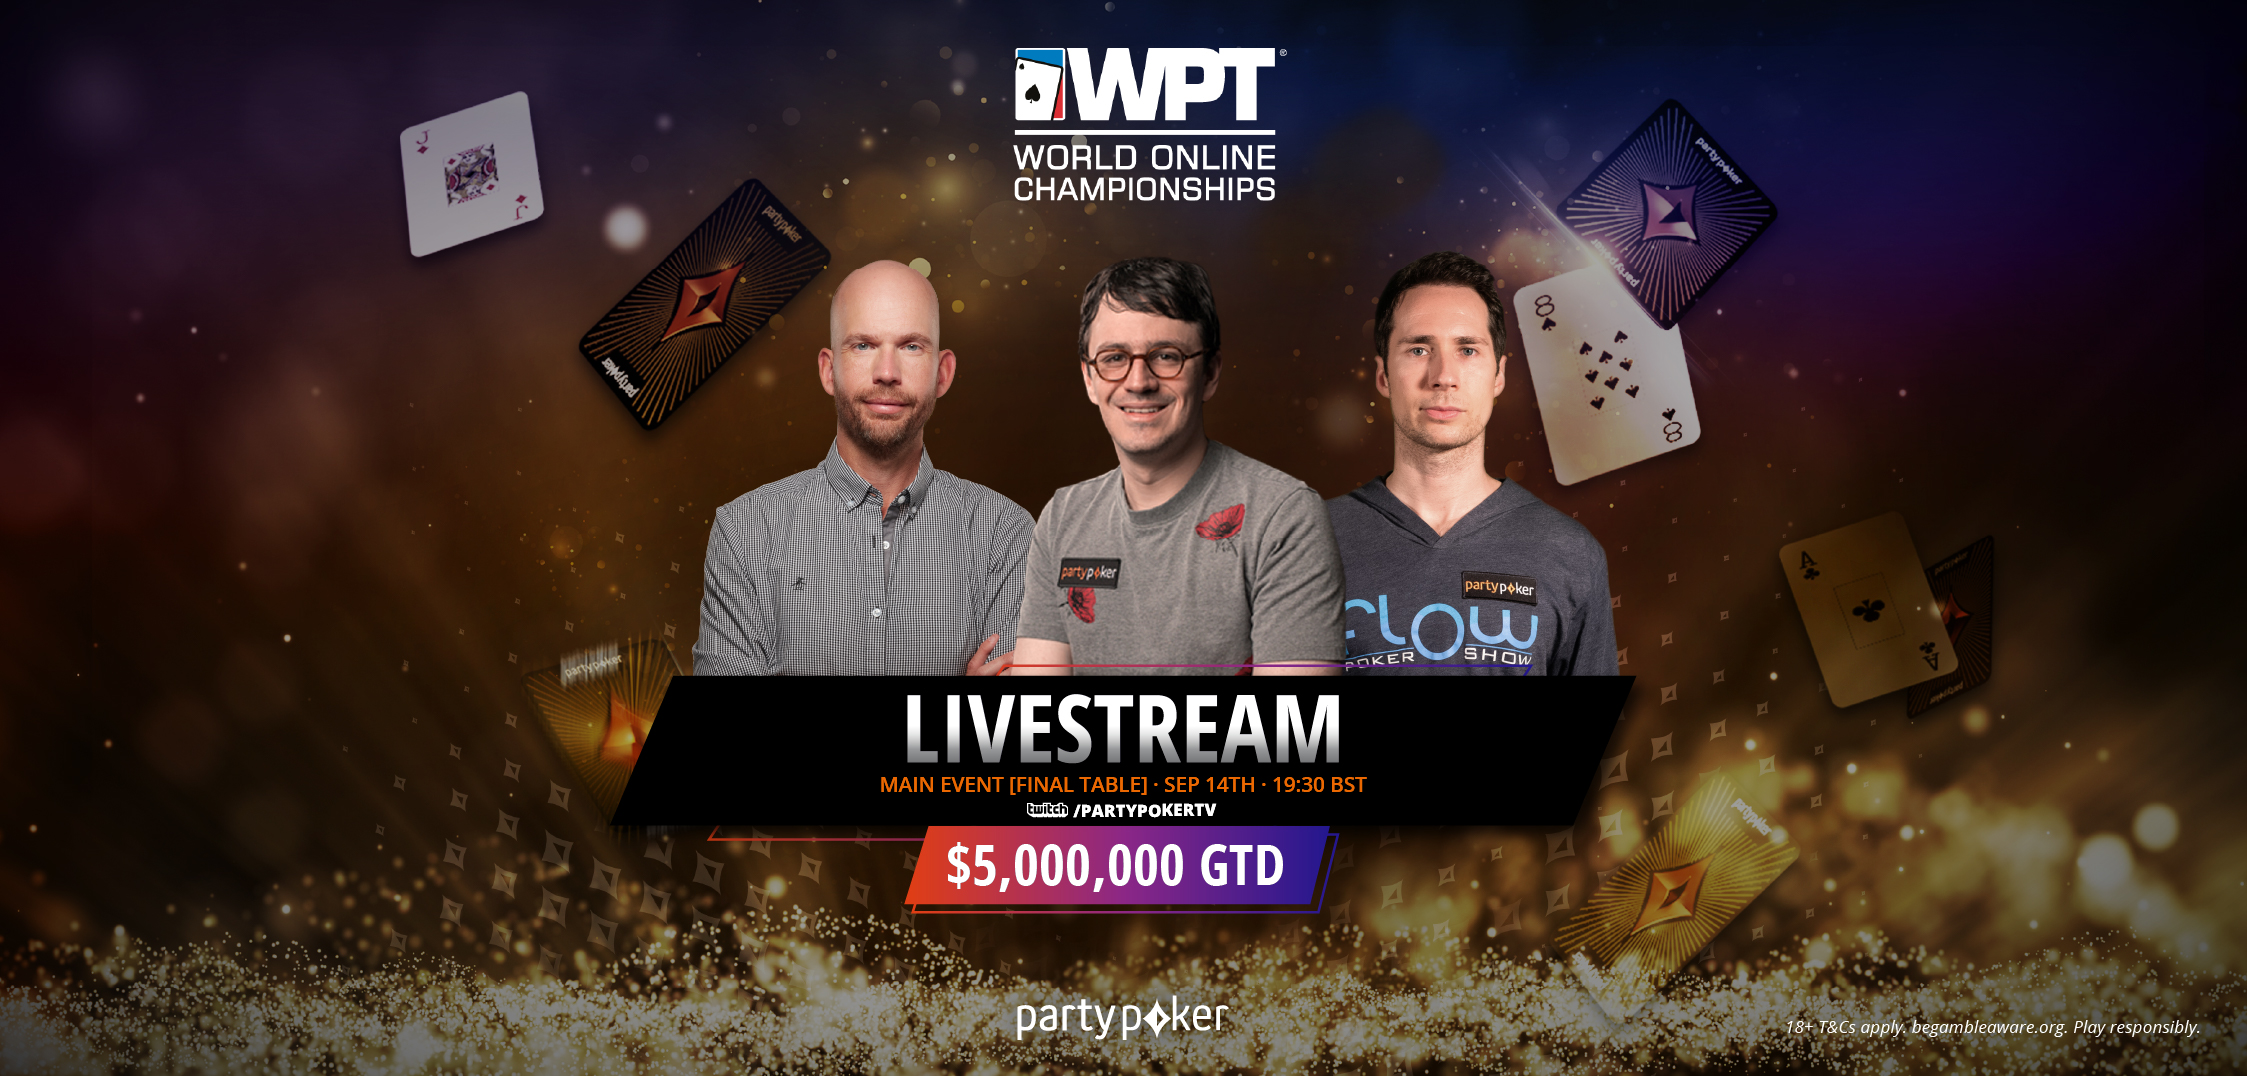 TW-BLOG-Upcoming-[WPT-WOC] (4)